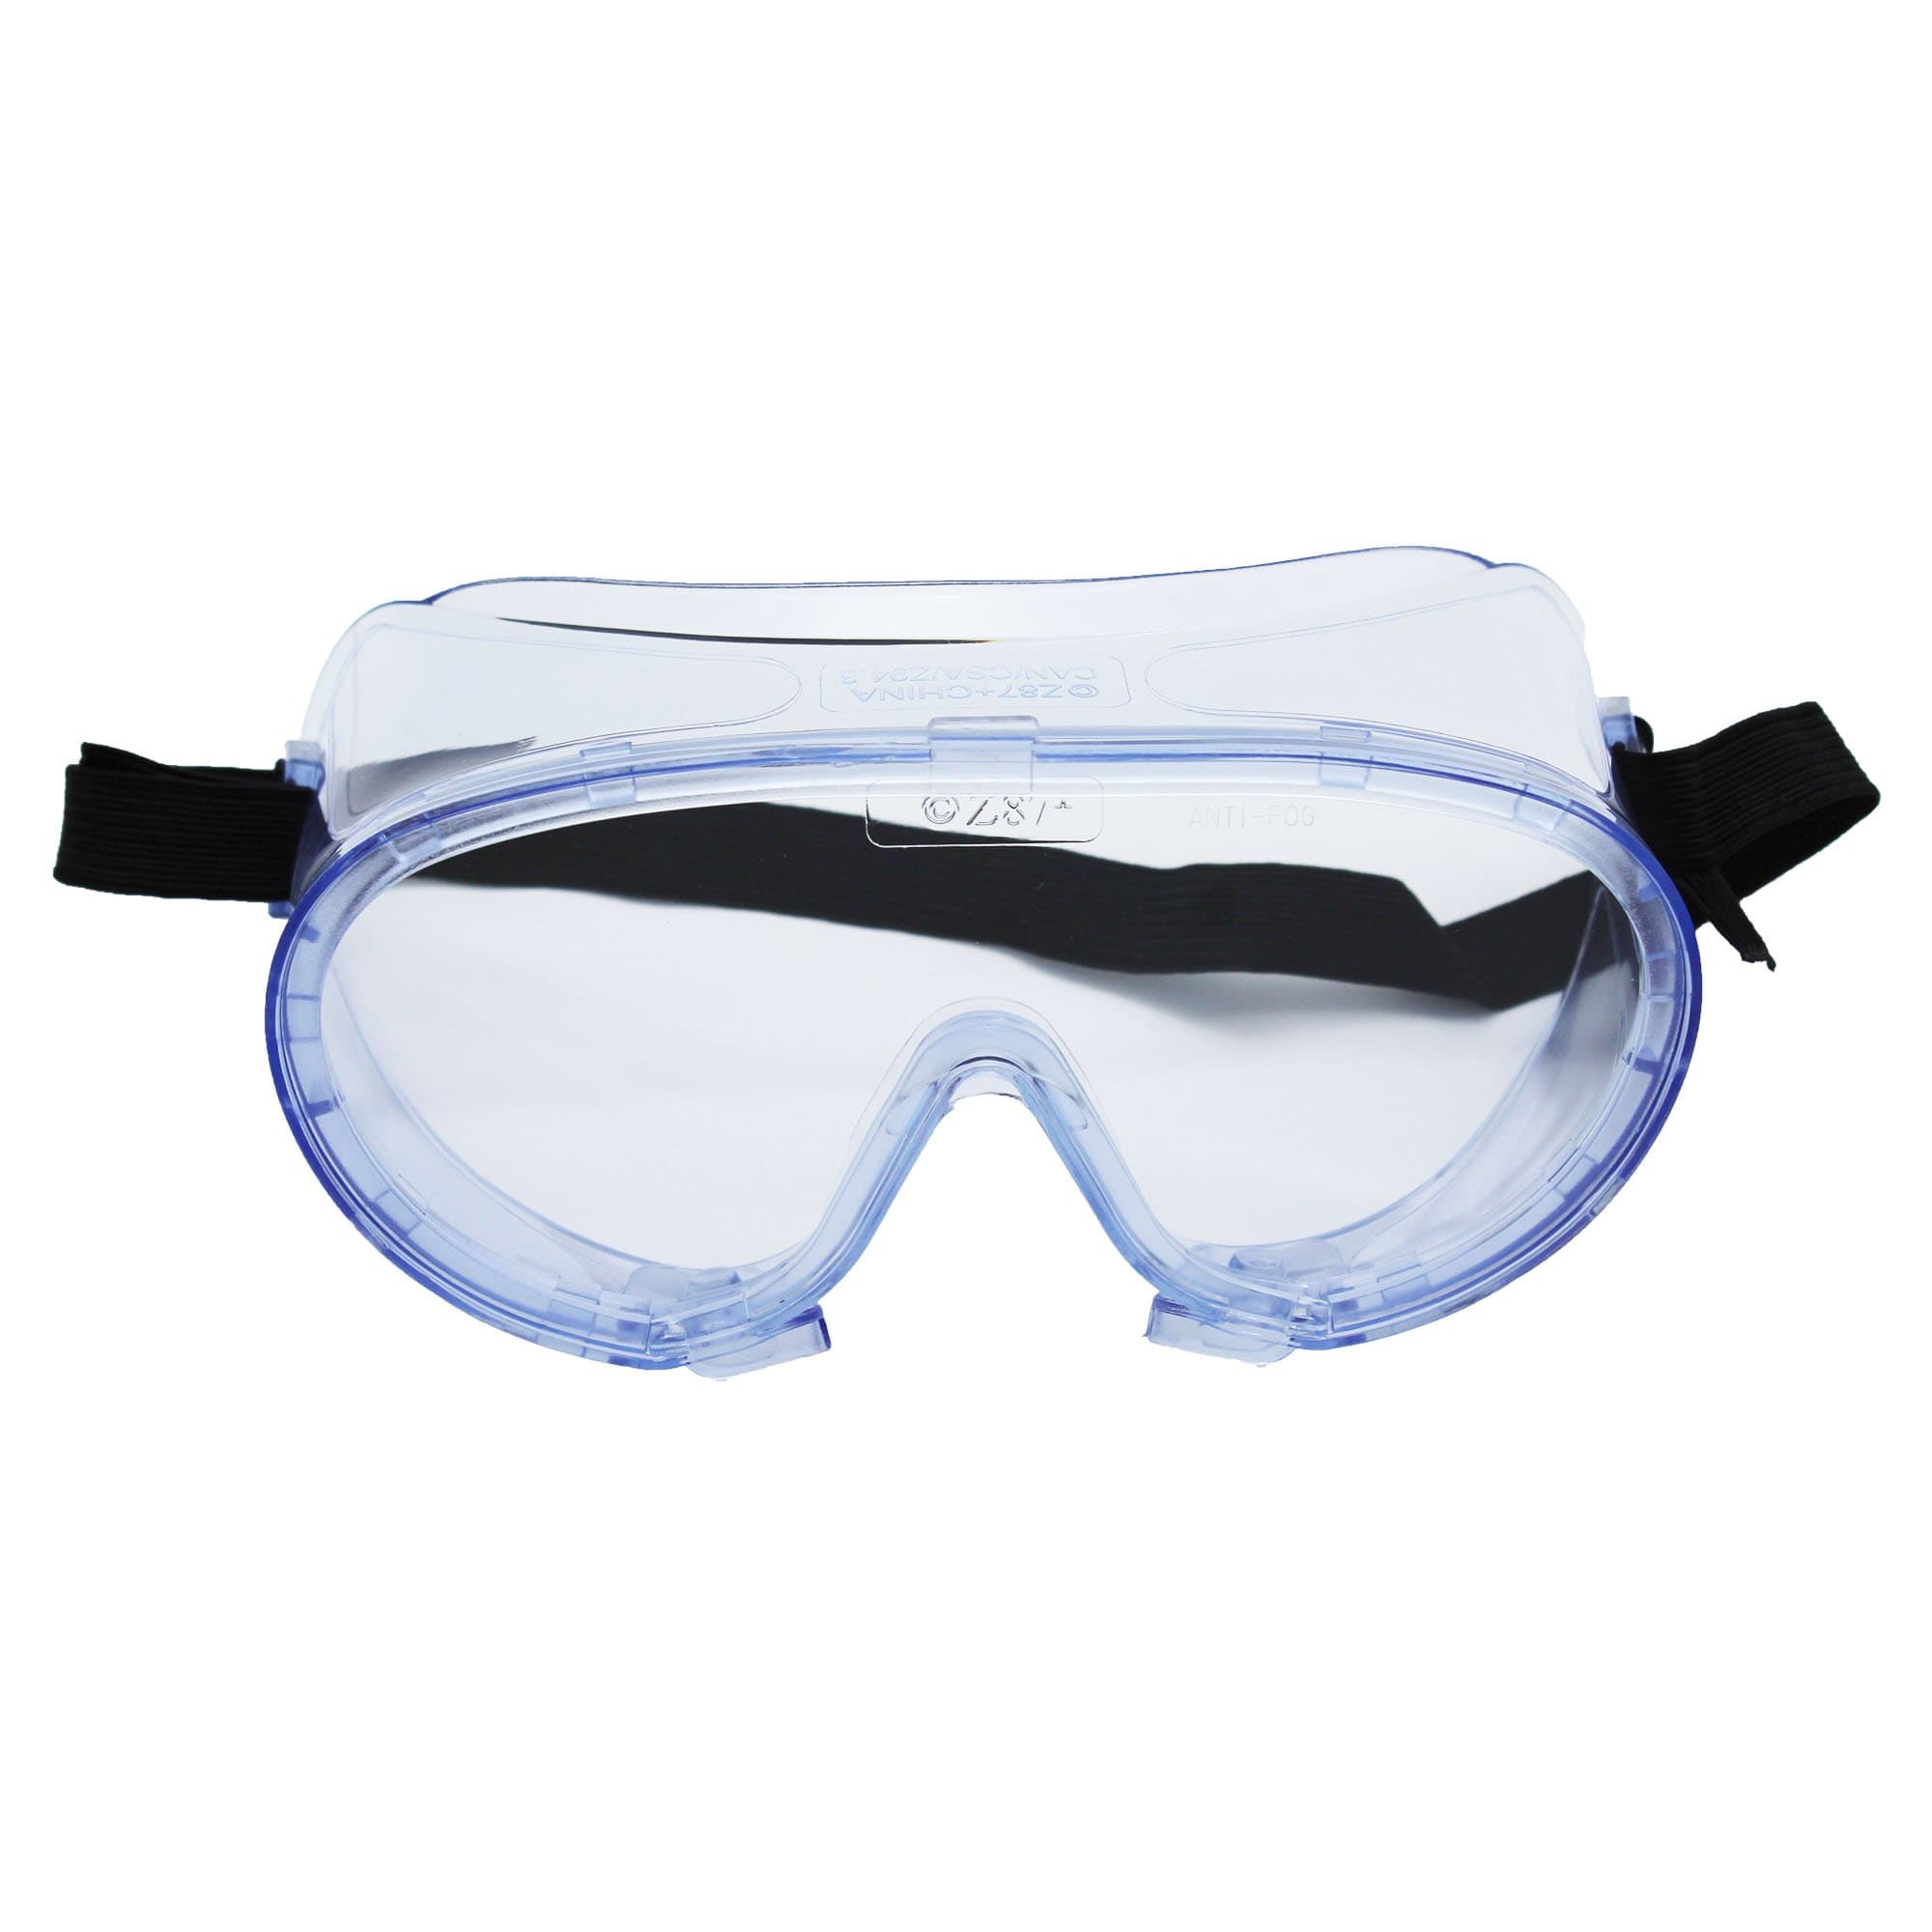 Lab Safety Goggles - Ventless Frame - Clear with Anti-Fog Lenses